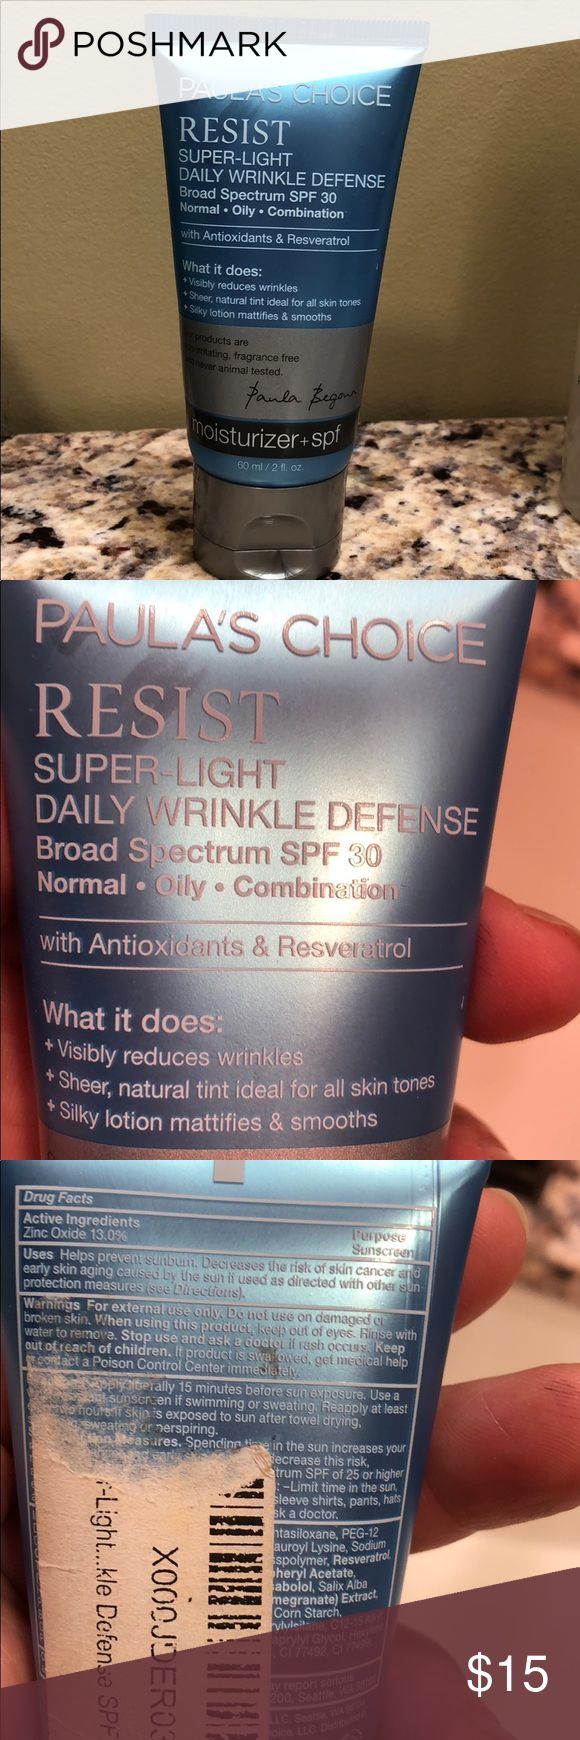 Paula's Choice Resist Super-Light Wrinkle Defense Paula's Choice Super Light Wrinkle Defense moisturizer + spf.  SPF 30. Color is light.  Only used a couple of times.  This is for oily to combination skin and my skin is too dry.  Can double as a light coverage foundation!!!  Expires 8/18.  More than 3/4 full!  Fast shipper and non smoking home! Paula's Choice Makeup Foundation